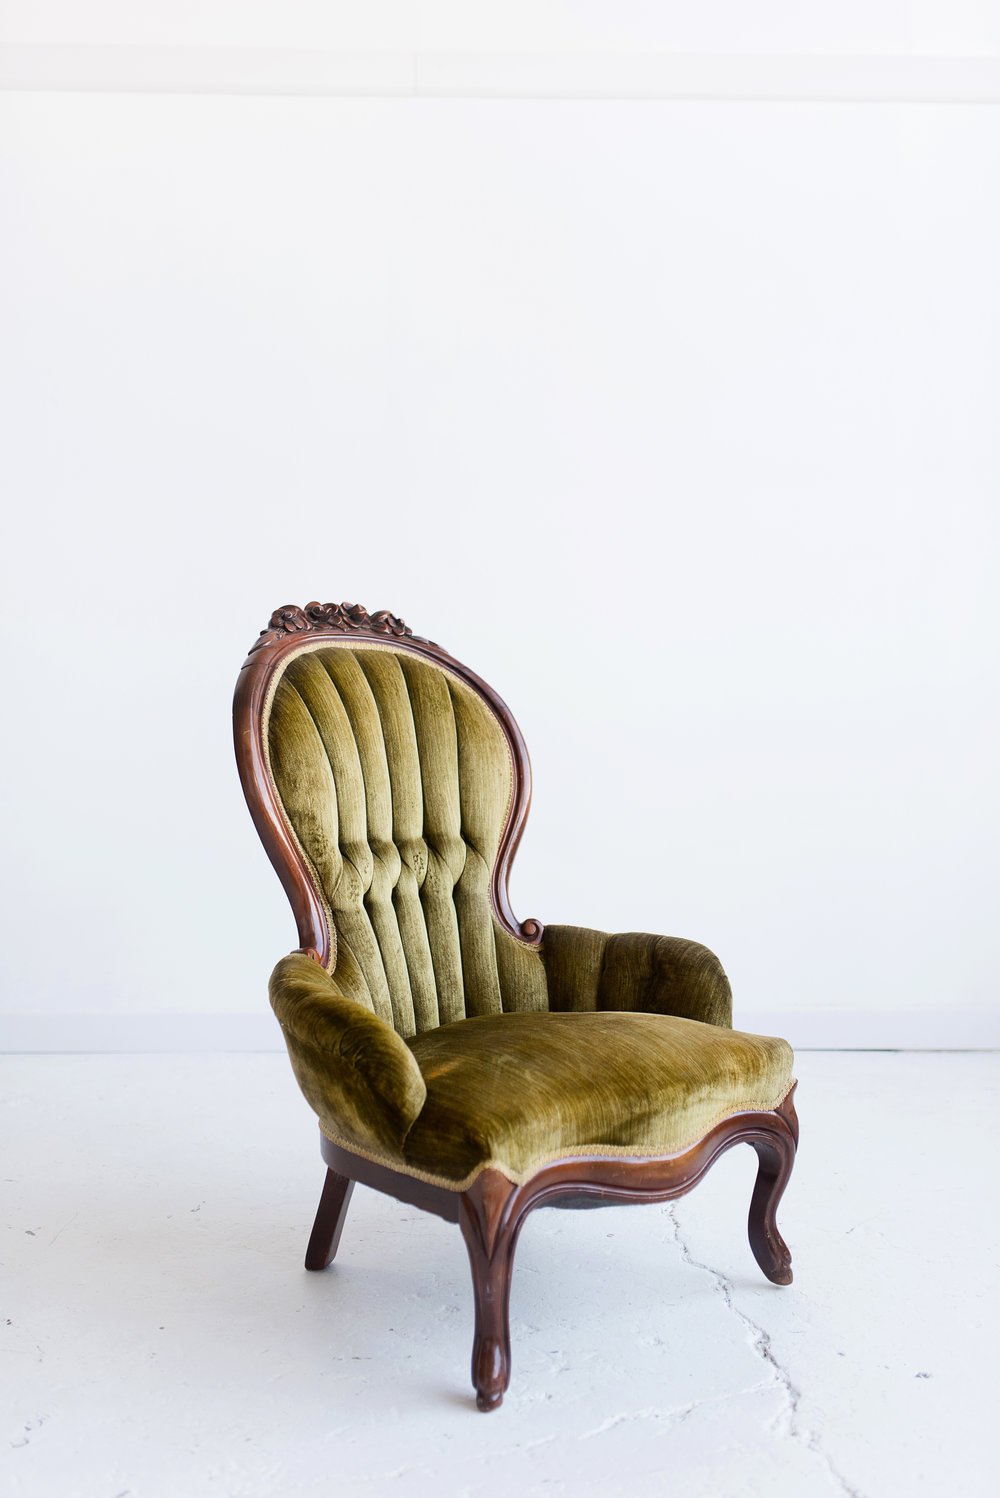 CHAIR012 - Kelly.jpg